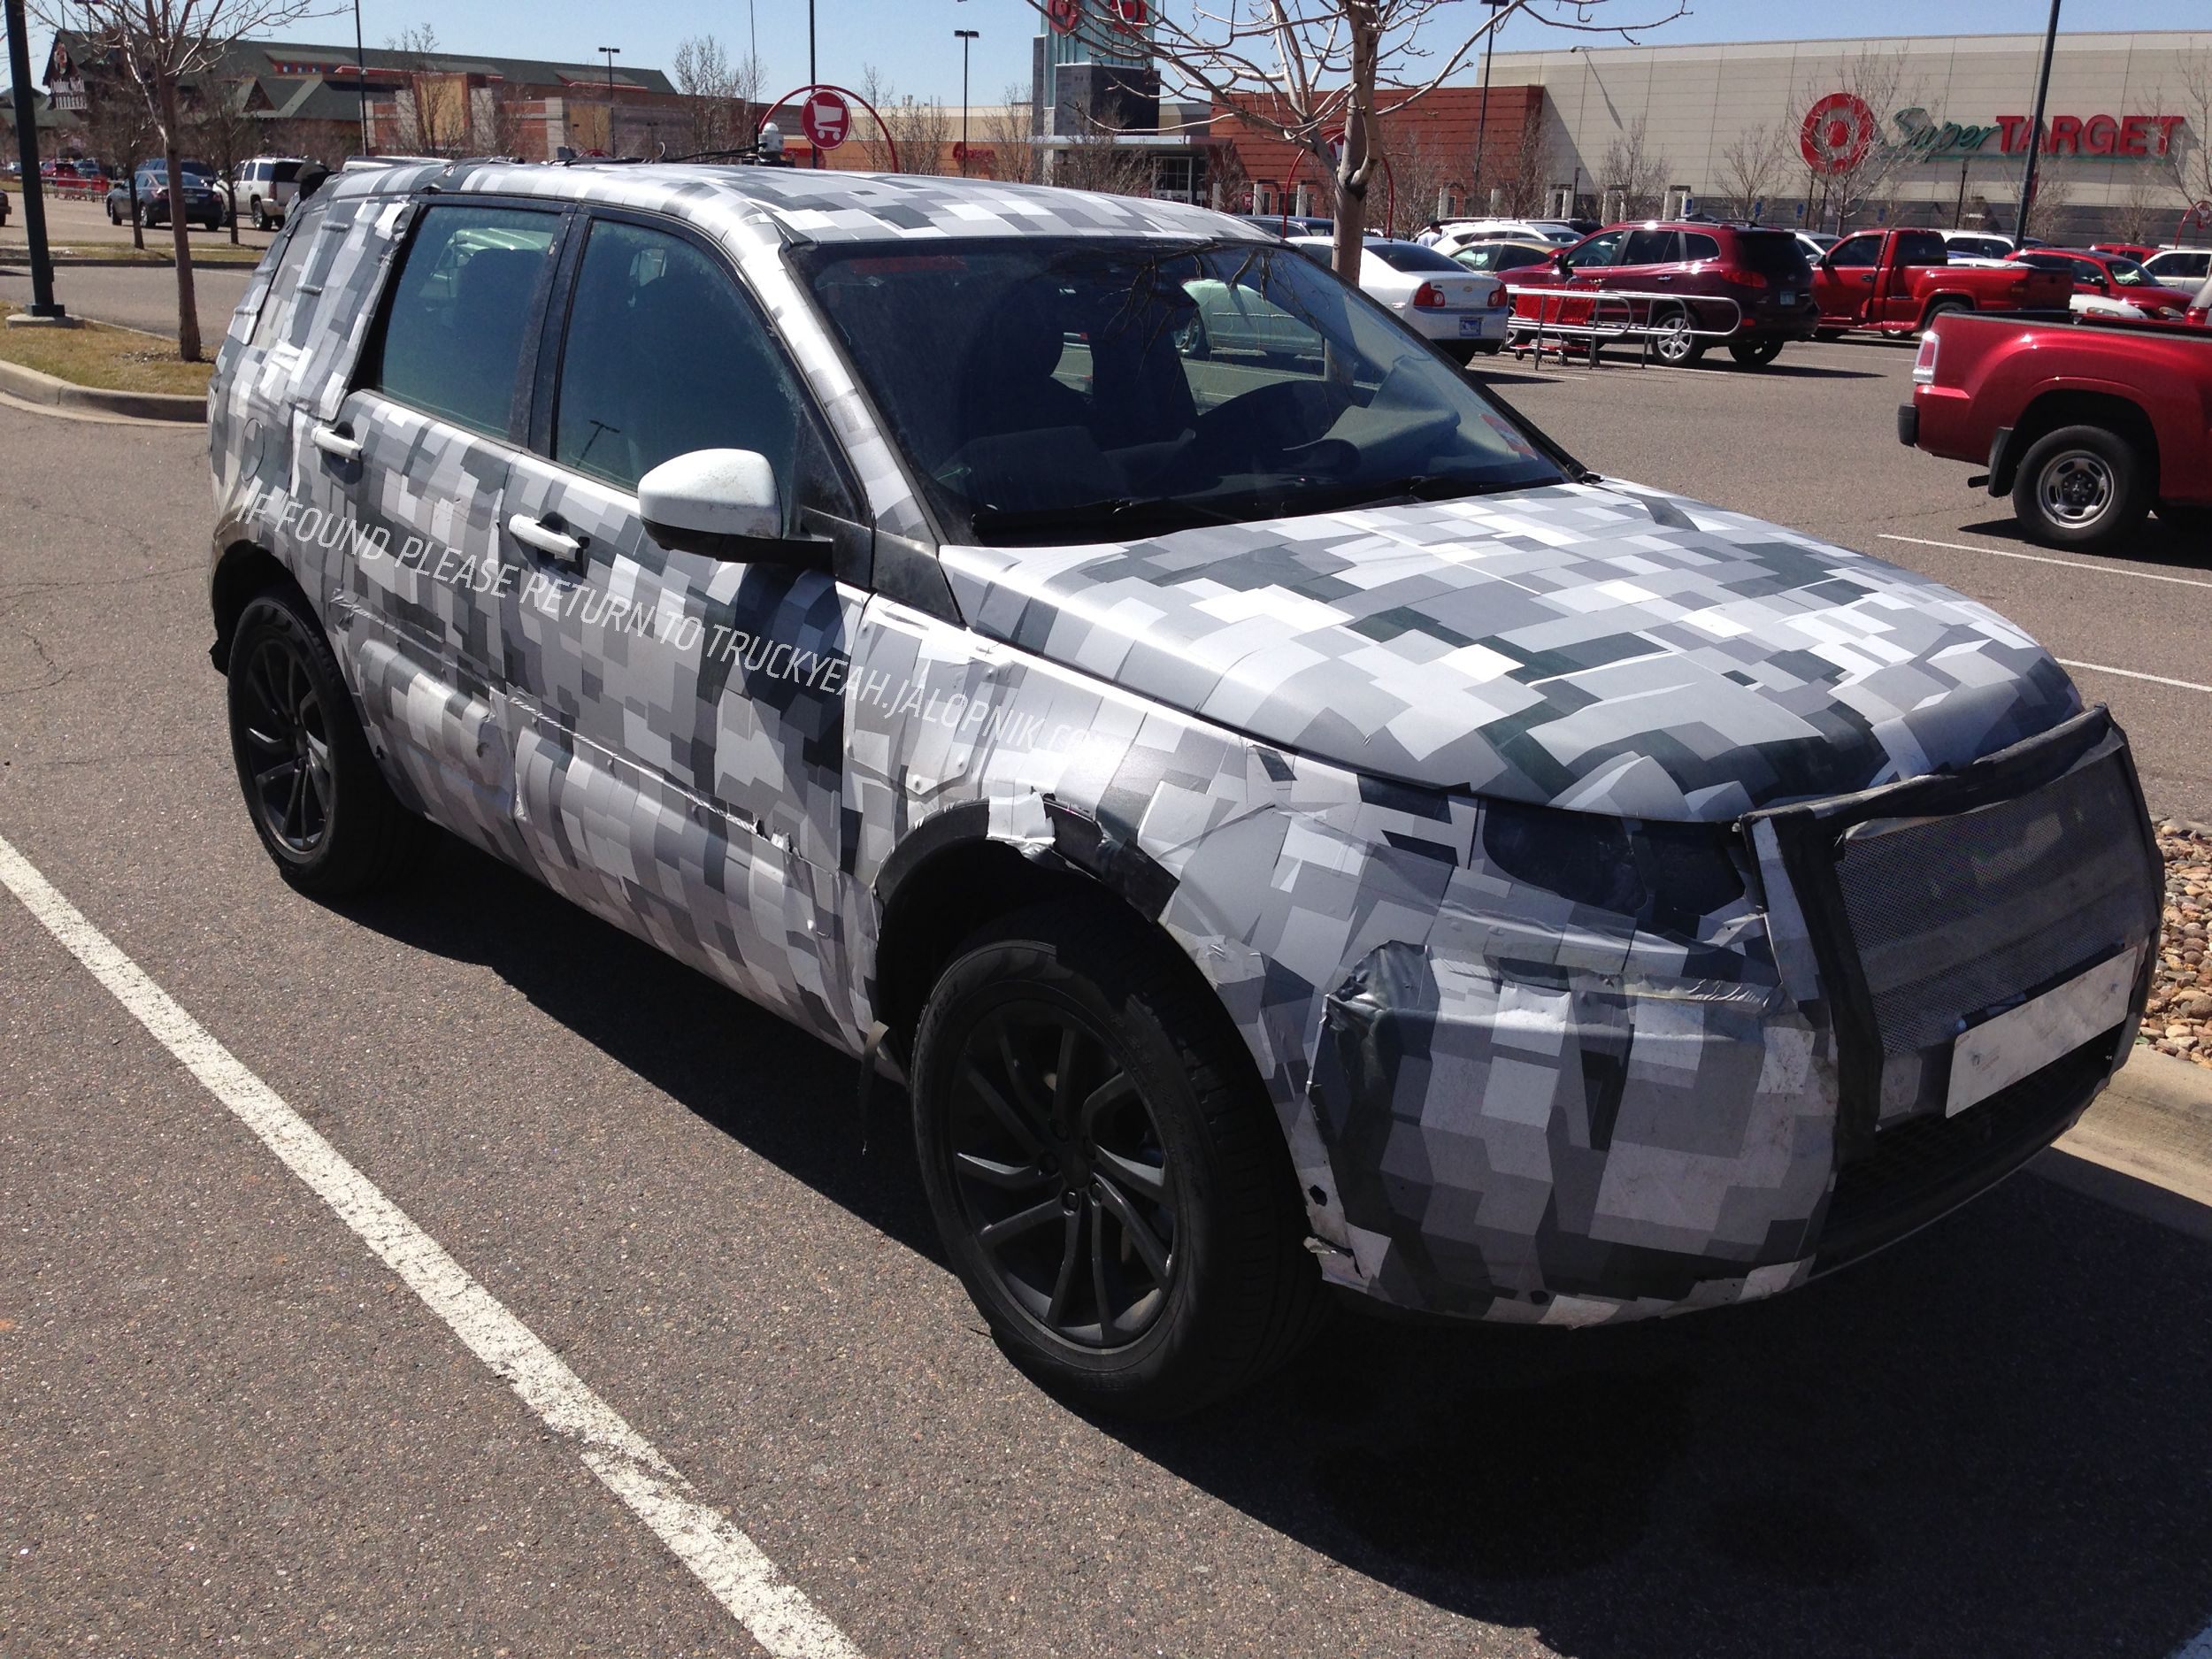 2014 - [Land Rover] Discovery Sport [L550] - Page 2 Sooyaouuybqq7toj1yzb